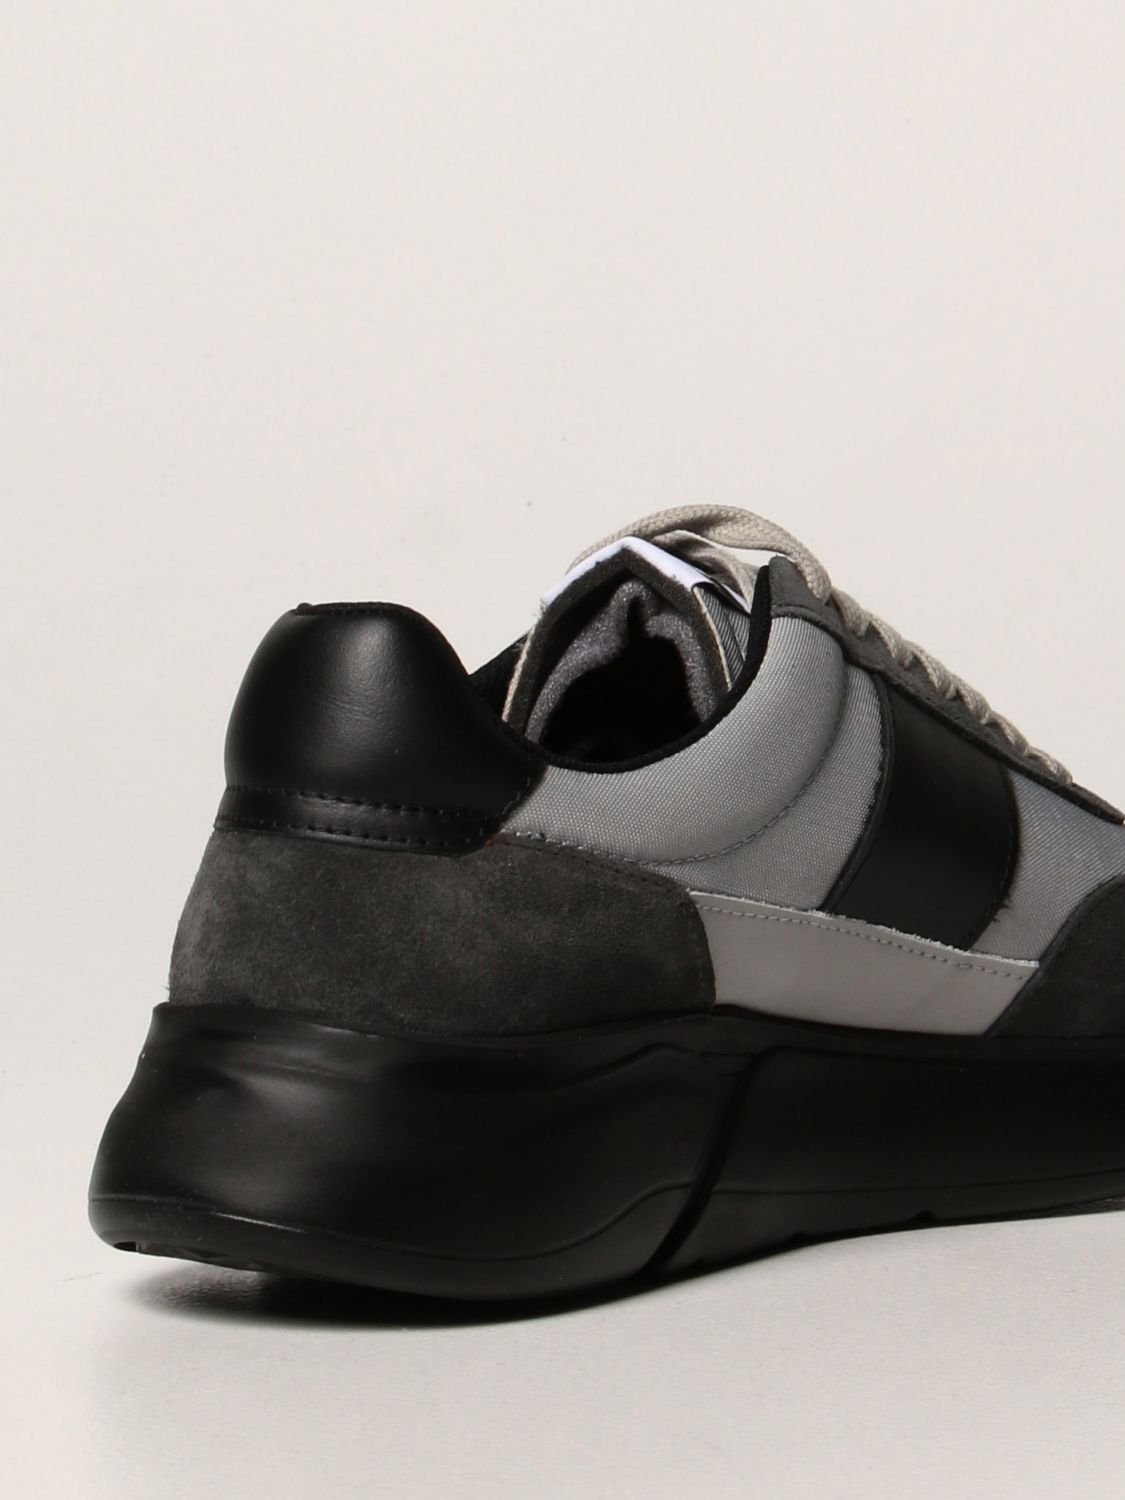 Sneakers Axel Arigato: Axel Arigato sneakers in leather, fabric and suede black 3